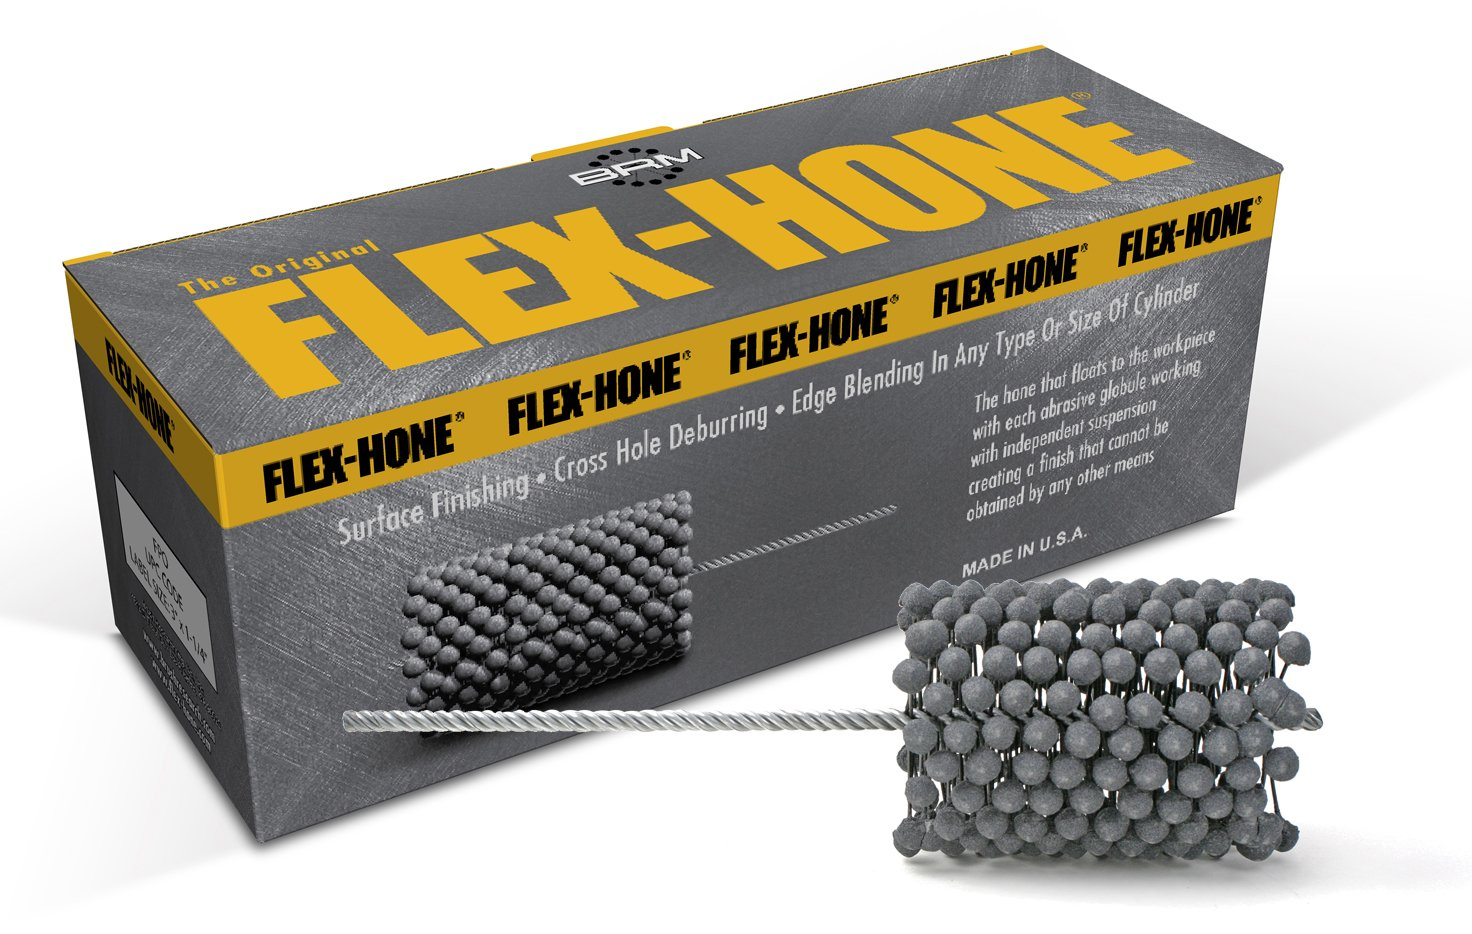 240 Grit Size Silicon Carbide Abrasive Brush Research FLEX-HONE Cylinder Hone 4.5 mm Diameter BC Series .177